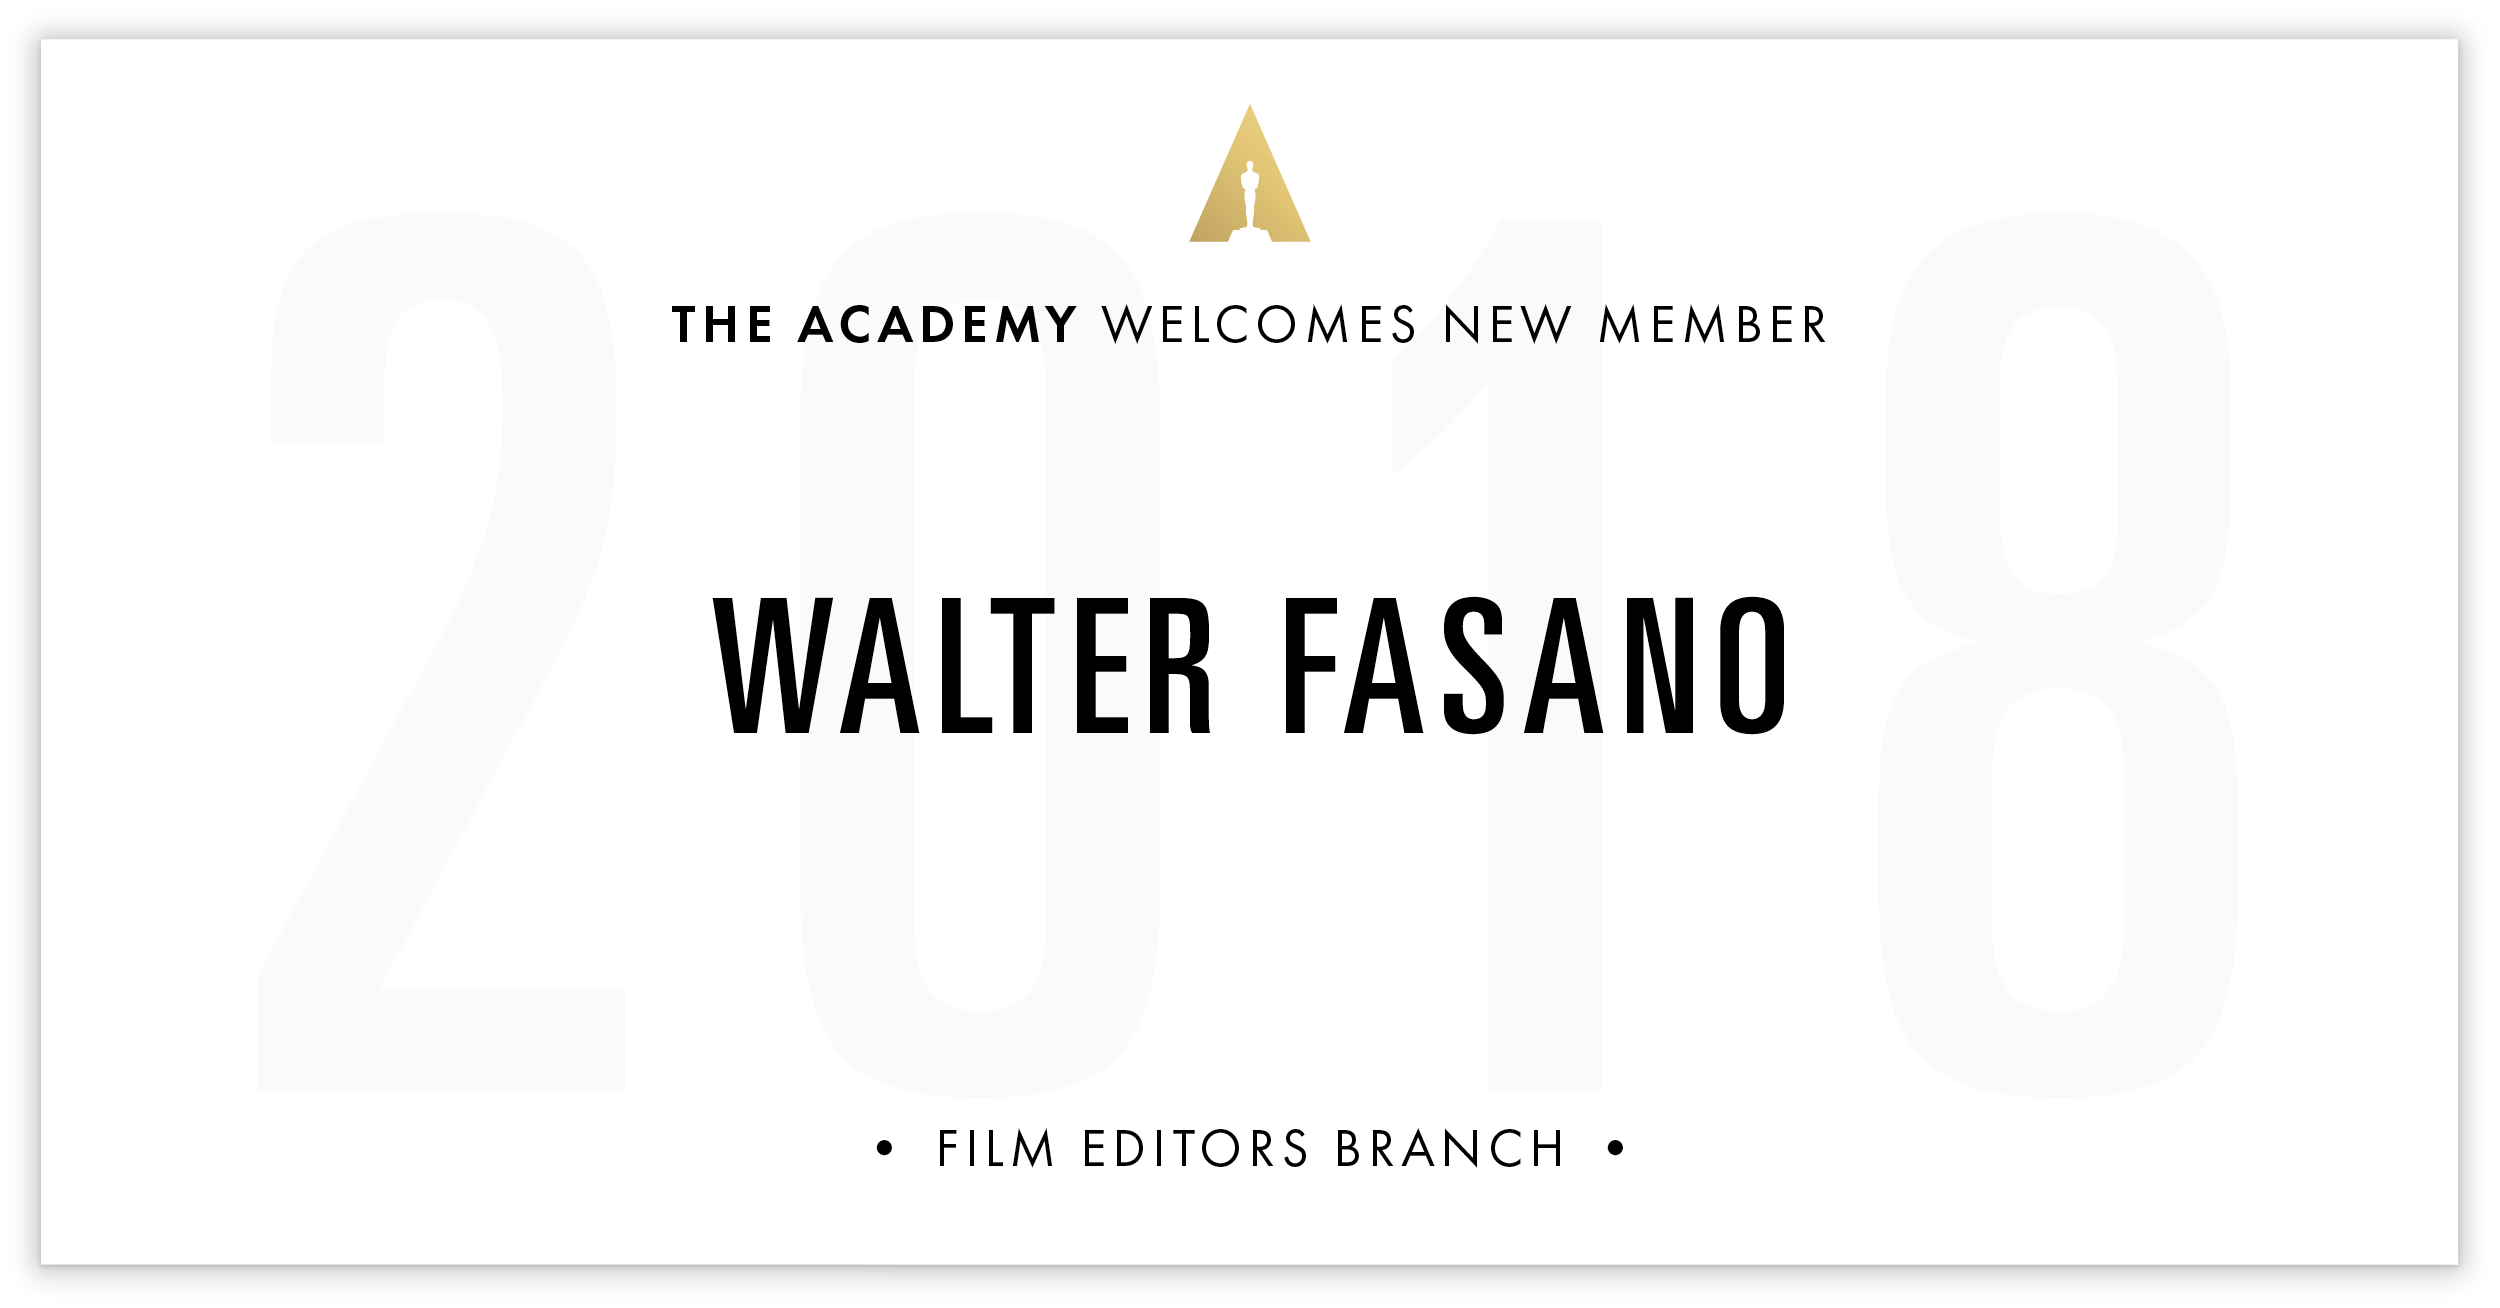 Walter Fasano is invited!